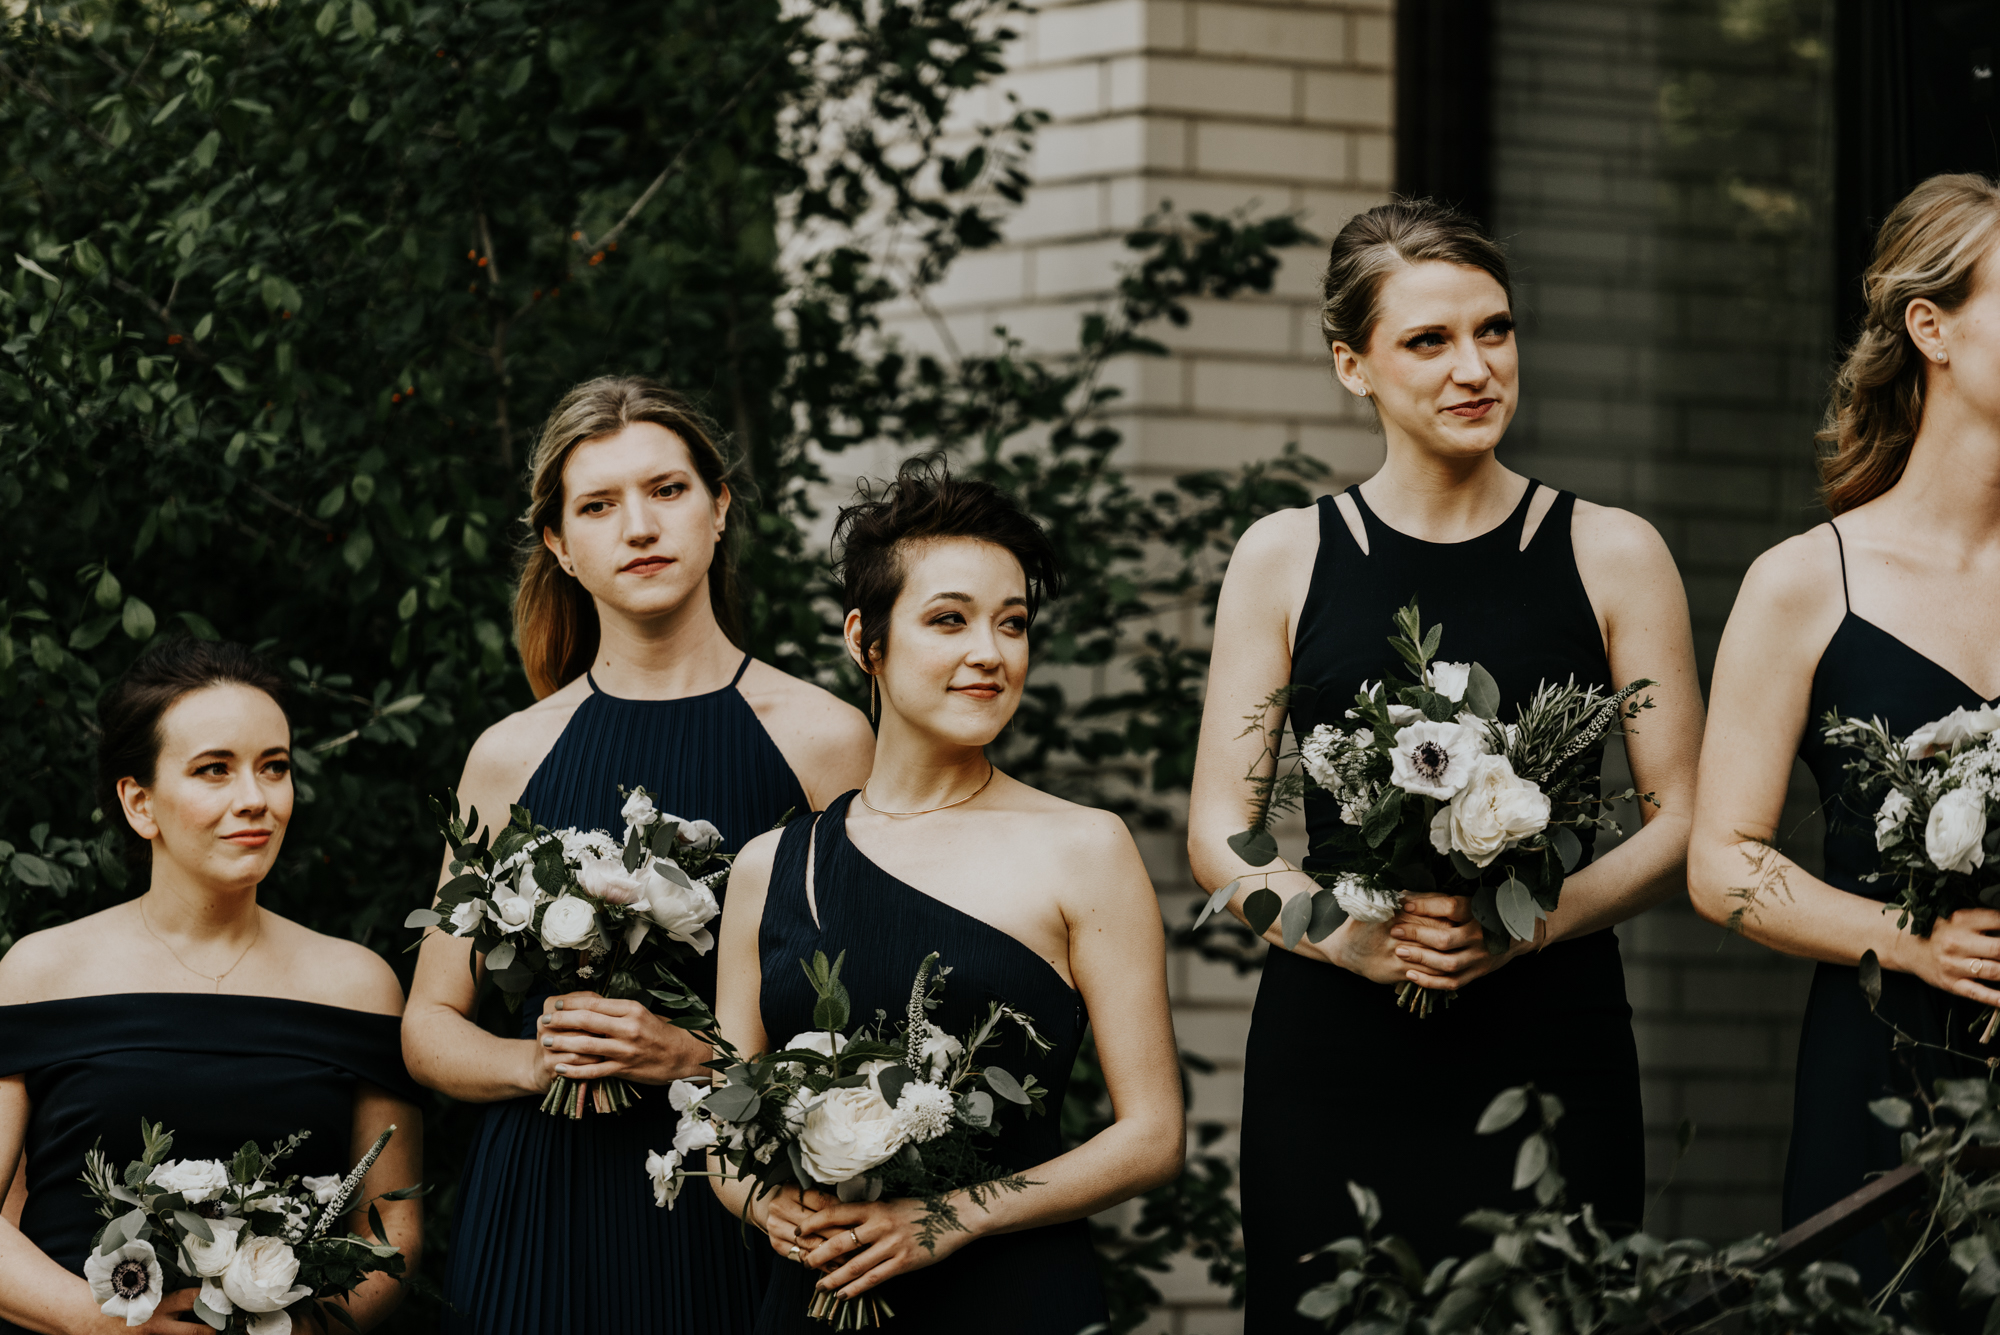 Intimate Ceremony Bridesmaids Photos at South Congress Hotel in Austin, Texas